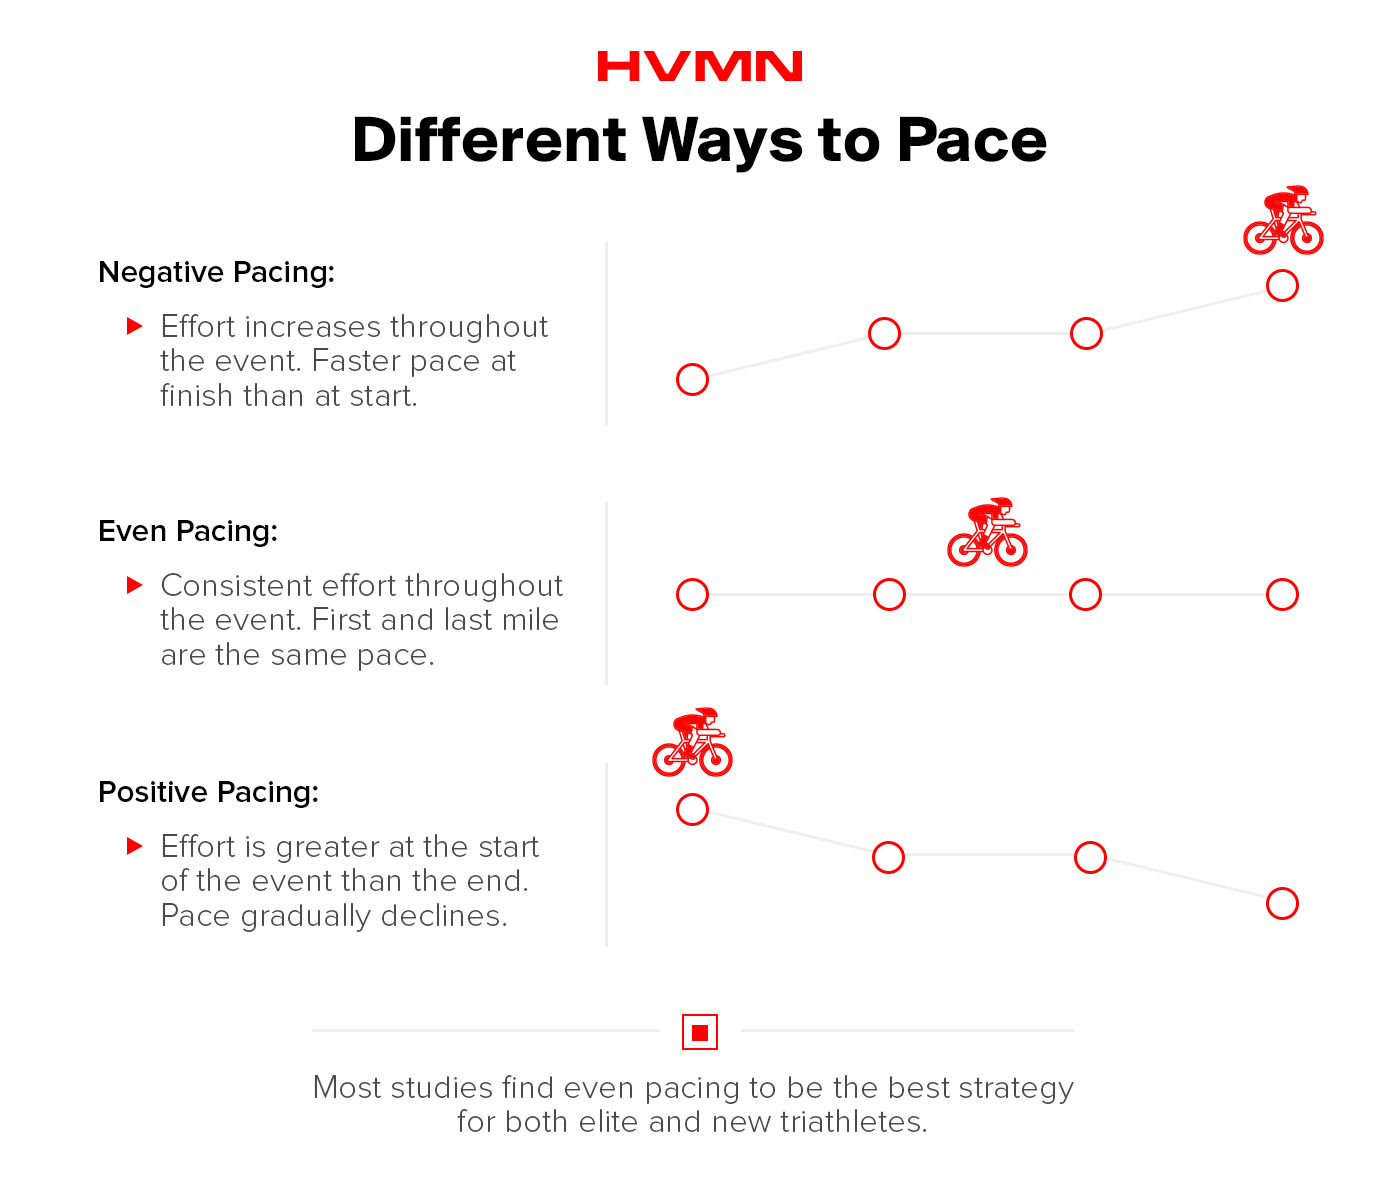 Illustrations of road cyclists that show different pacing strategies: even, negative and positive